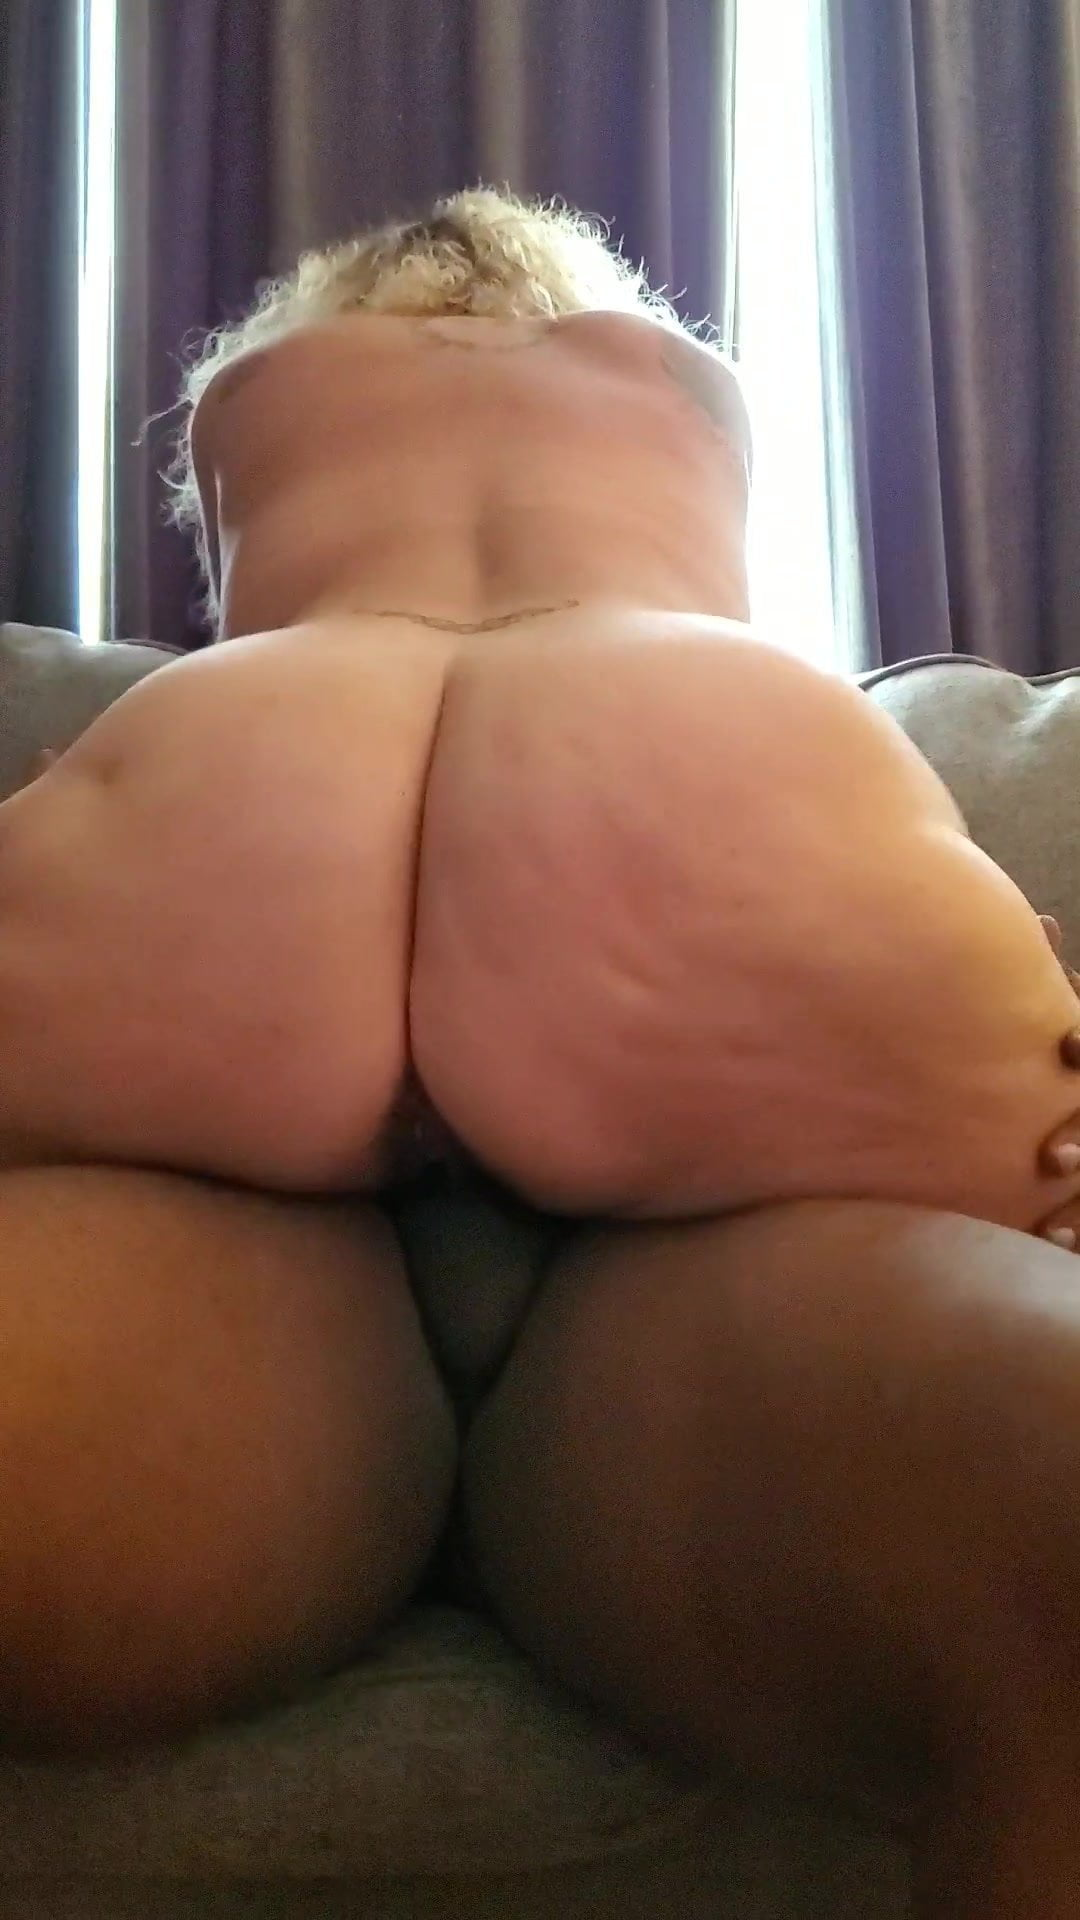 Big Thick Phat Ass Booty Bbc